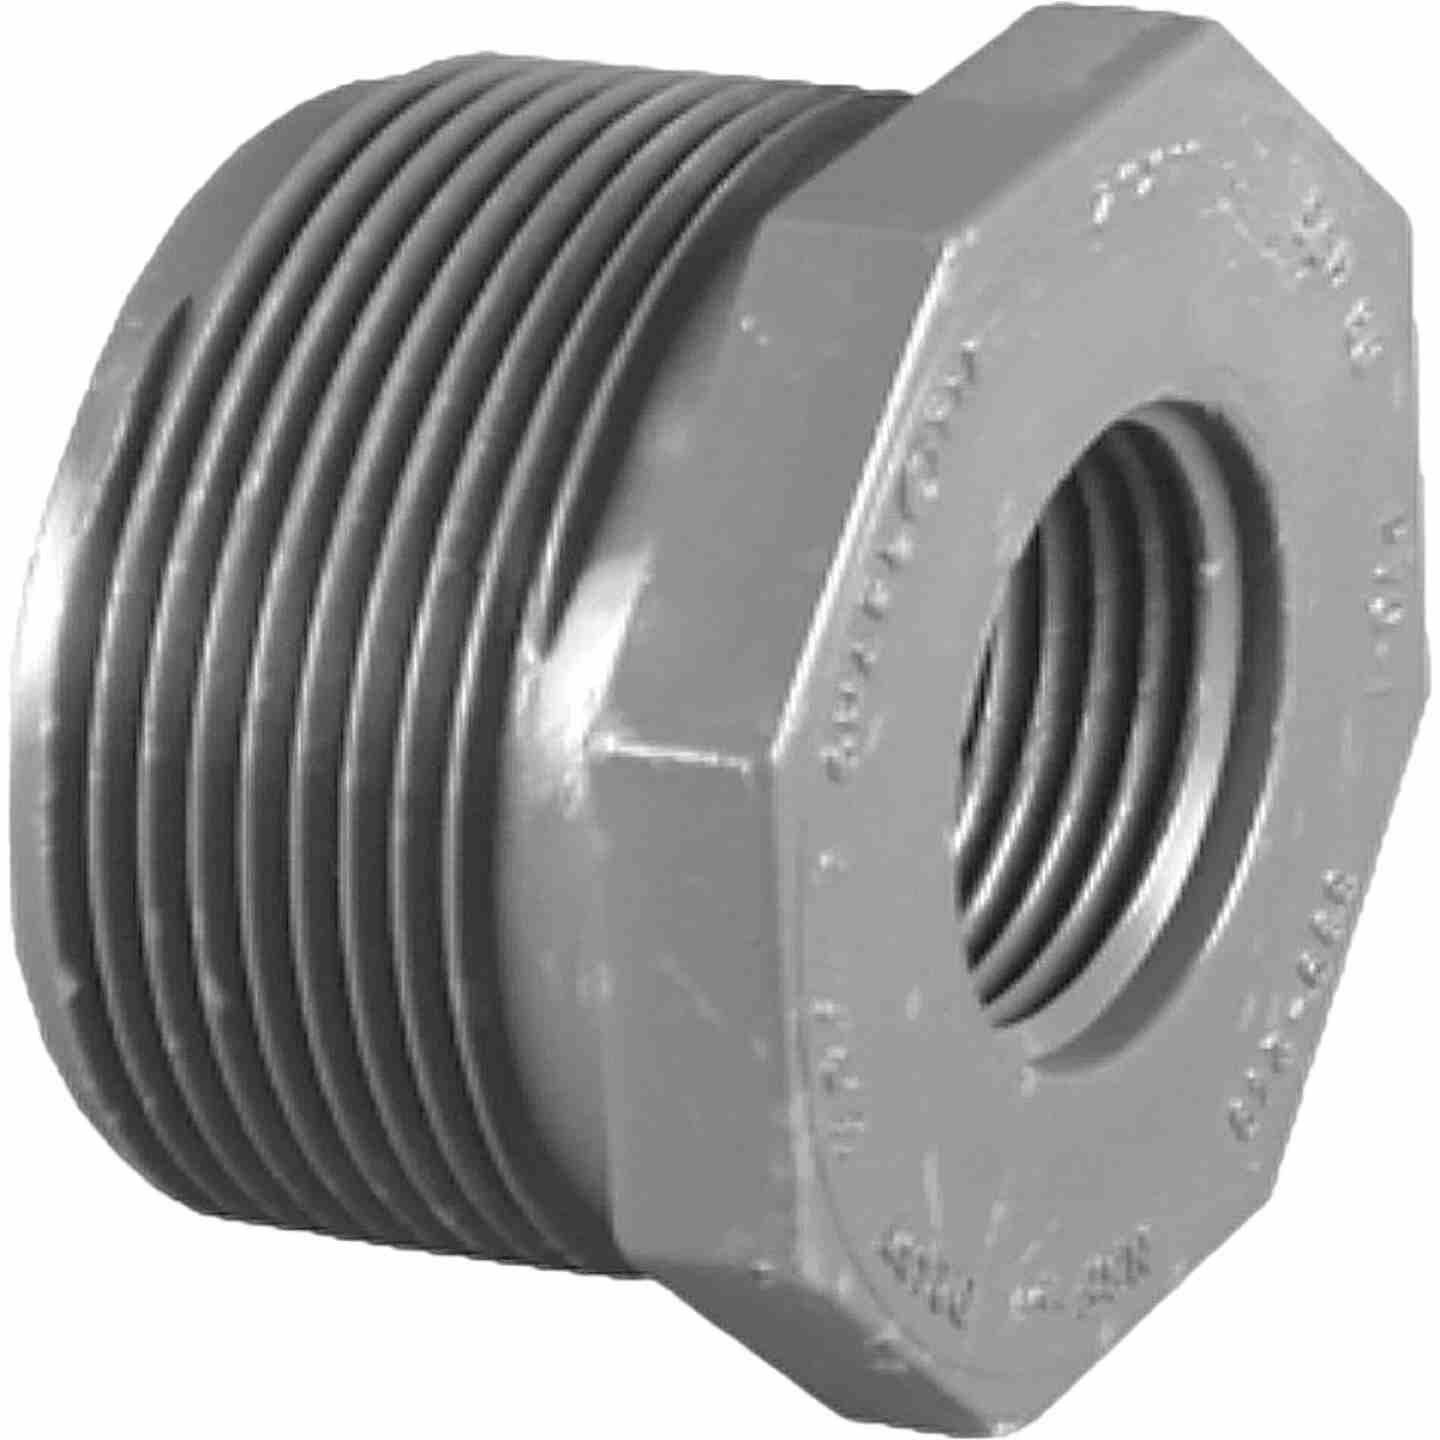 Charlotte Pipe 1-1/4 In. MPT x 1 In. FPT Schedule 80 Reducing PVC Bushing Image 1